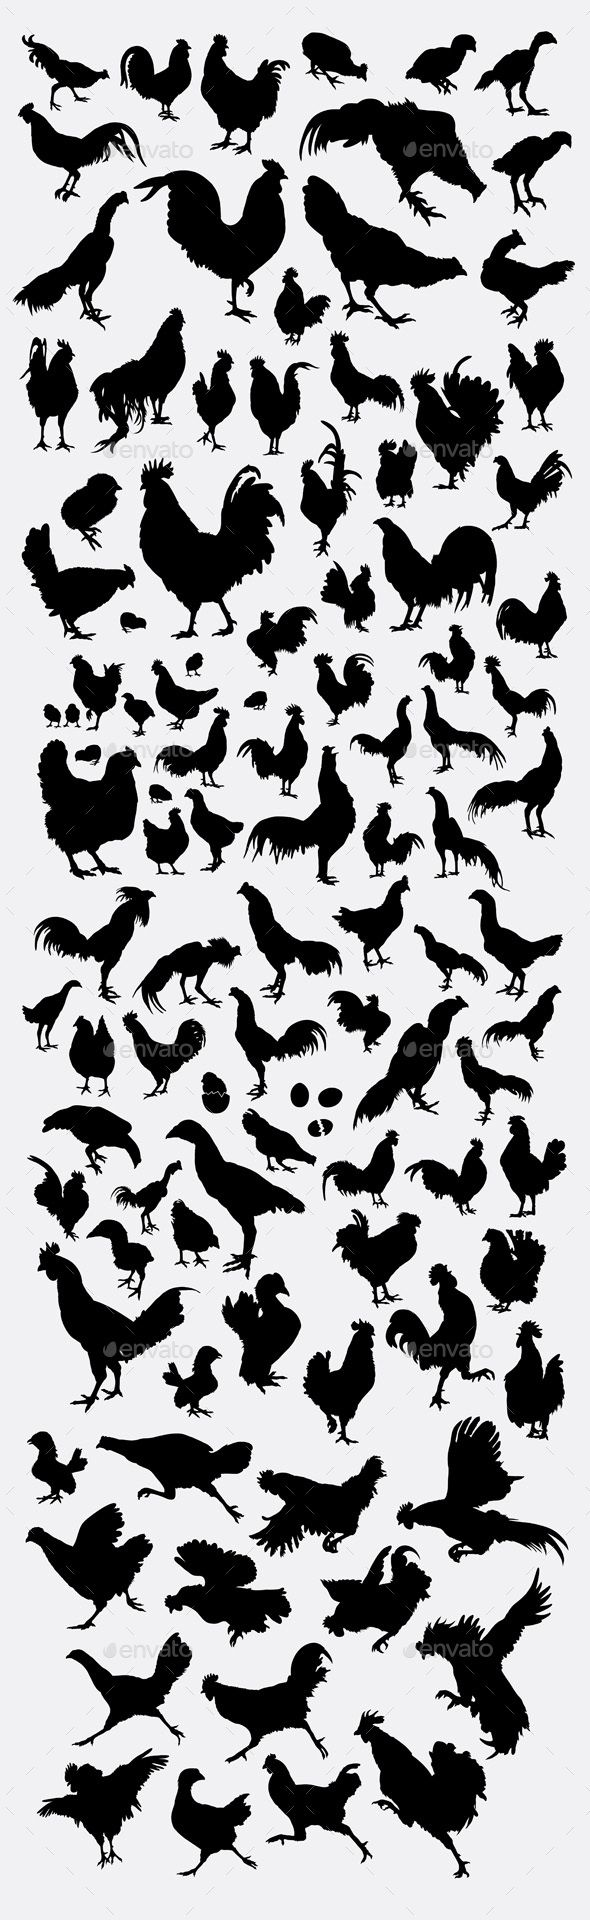 Rooster Collection Silhouette - #silhouettes #animals #characters #isolated #illustration #vector #template #rooster #chicken